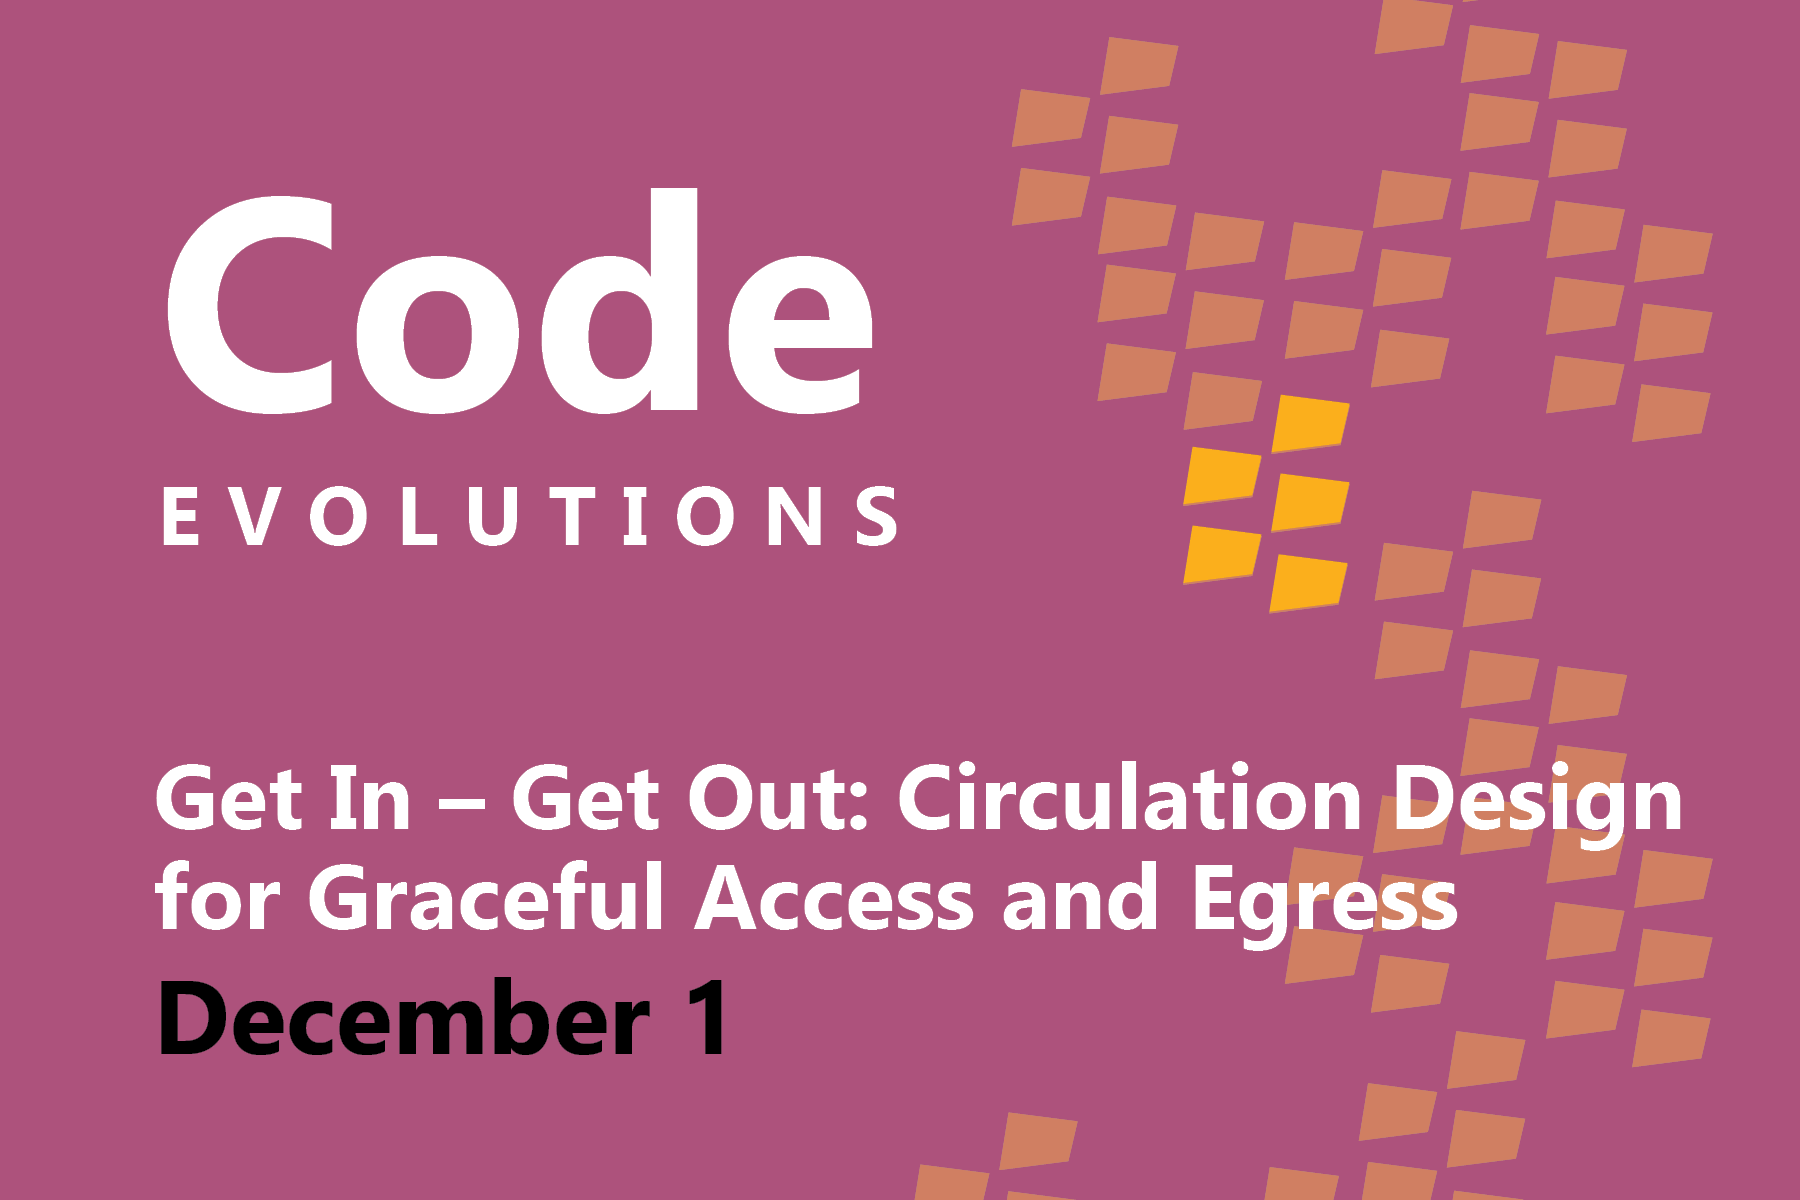 This page is intended only for participants of Code Evolutions: Get In - Get Out Circulation Design For Graceful Access.